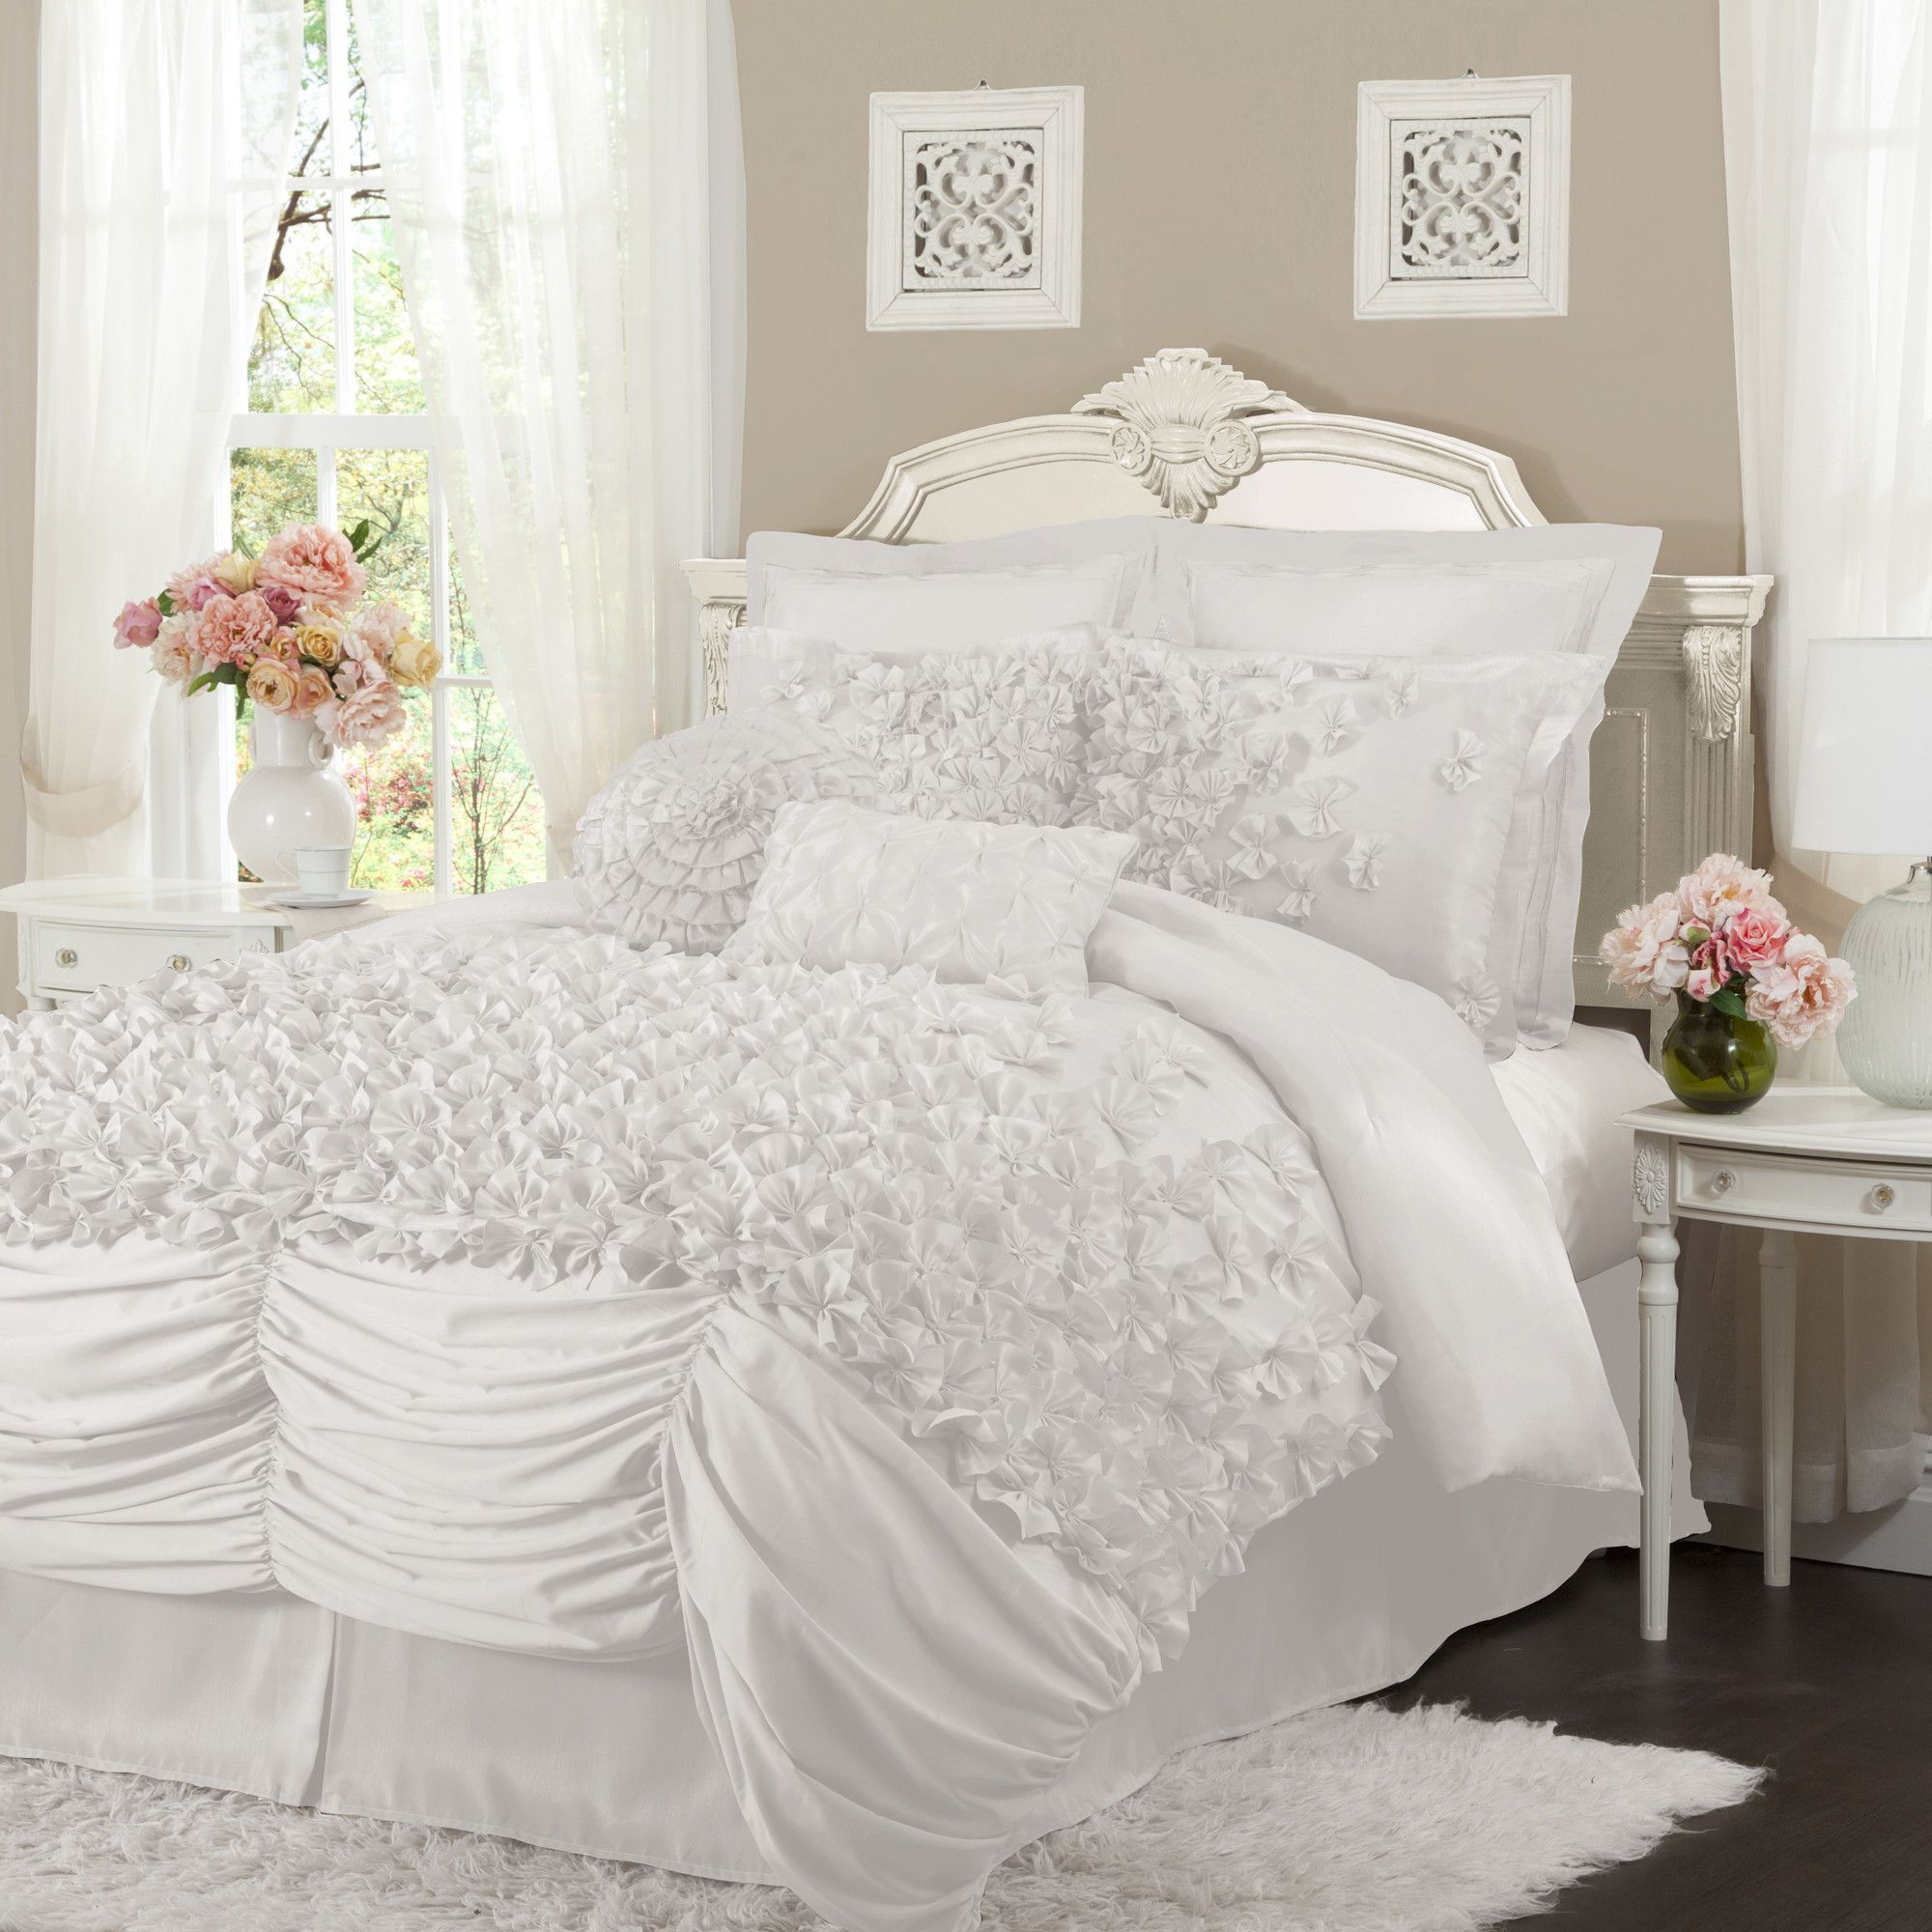 fern set white spread comforters bed for bedspread comforter sale